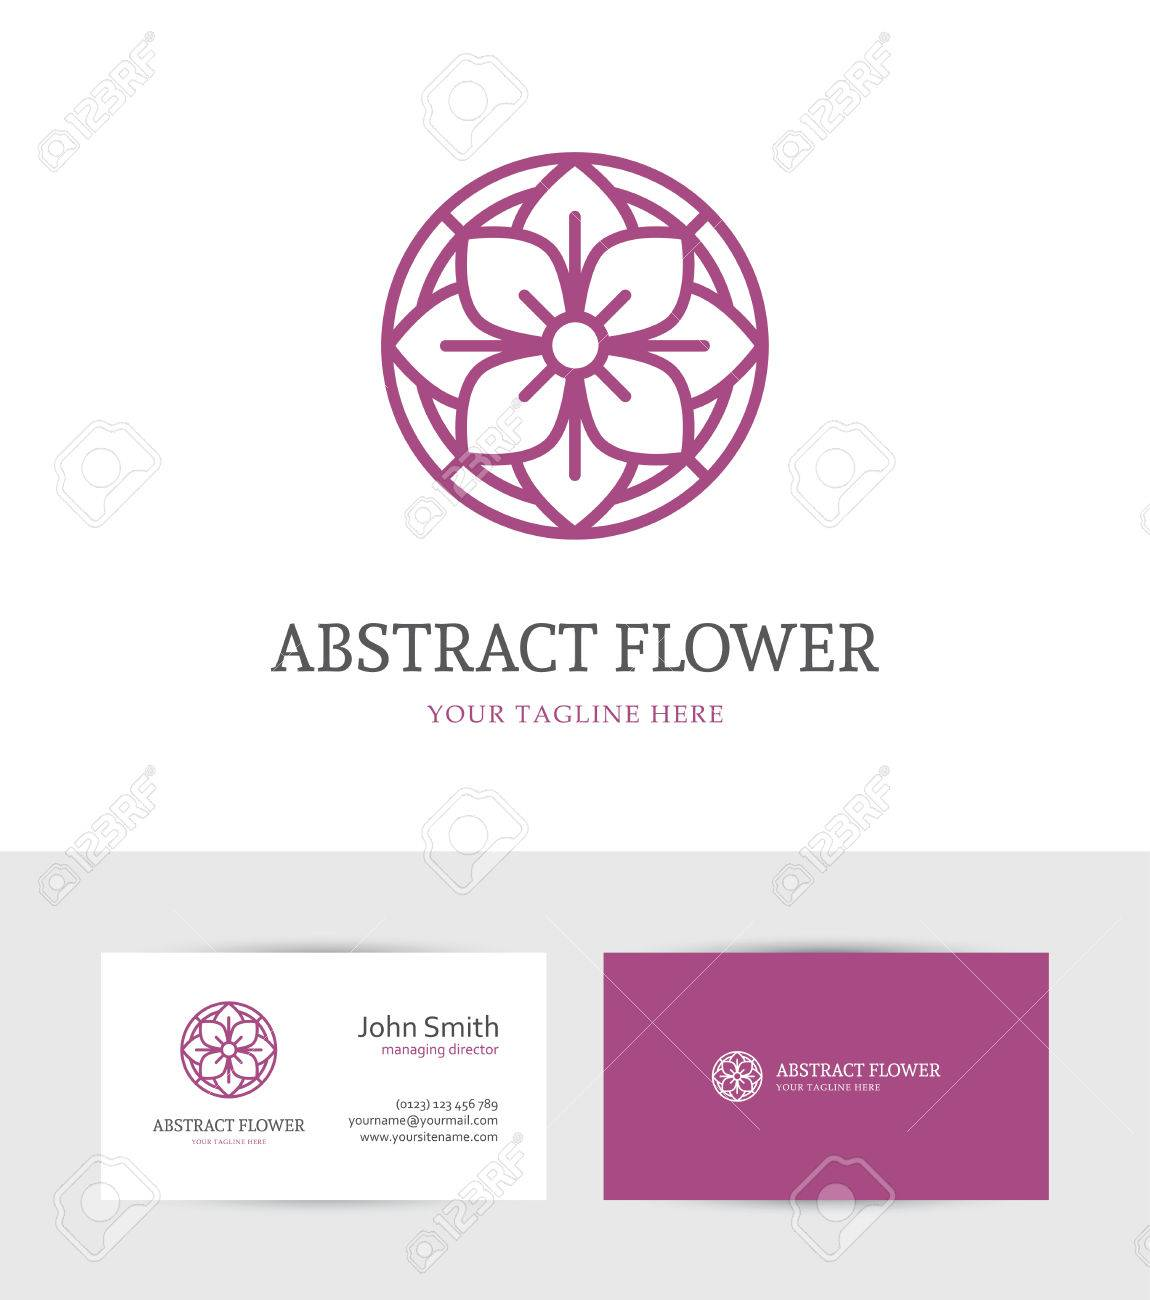 Modern abstract linear purple flower logo and business card design banco de imagens modern abstract linear purple flower logo and business card design template for beauty salon spa or cosmetics design concept reheart Image collections